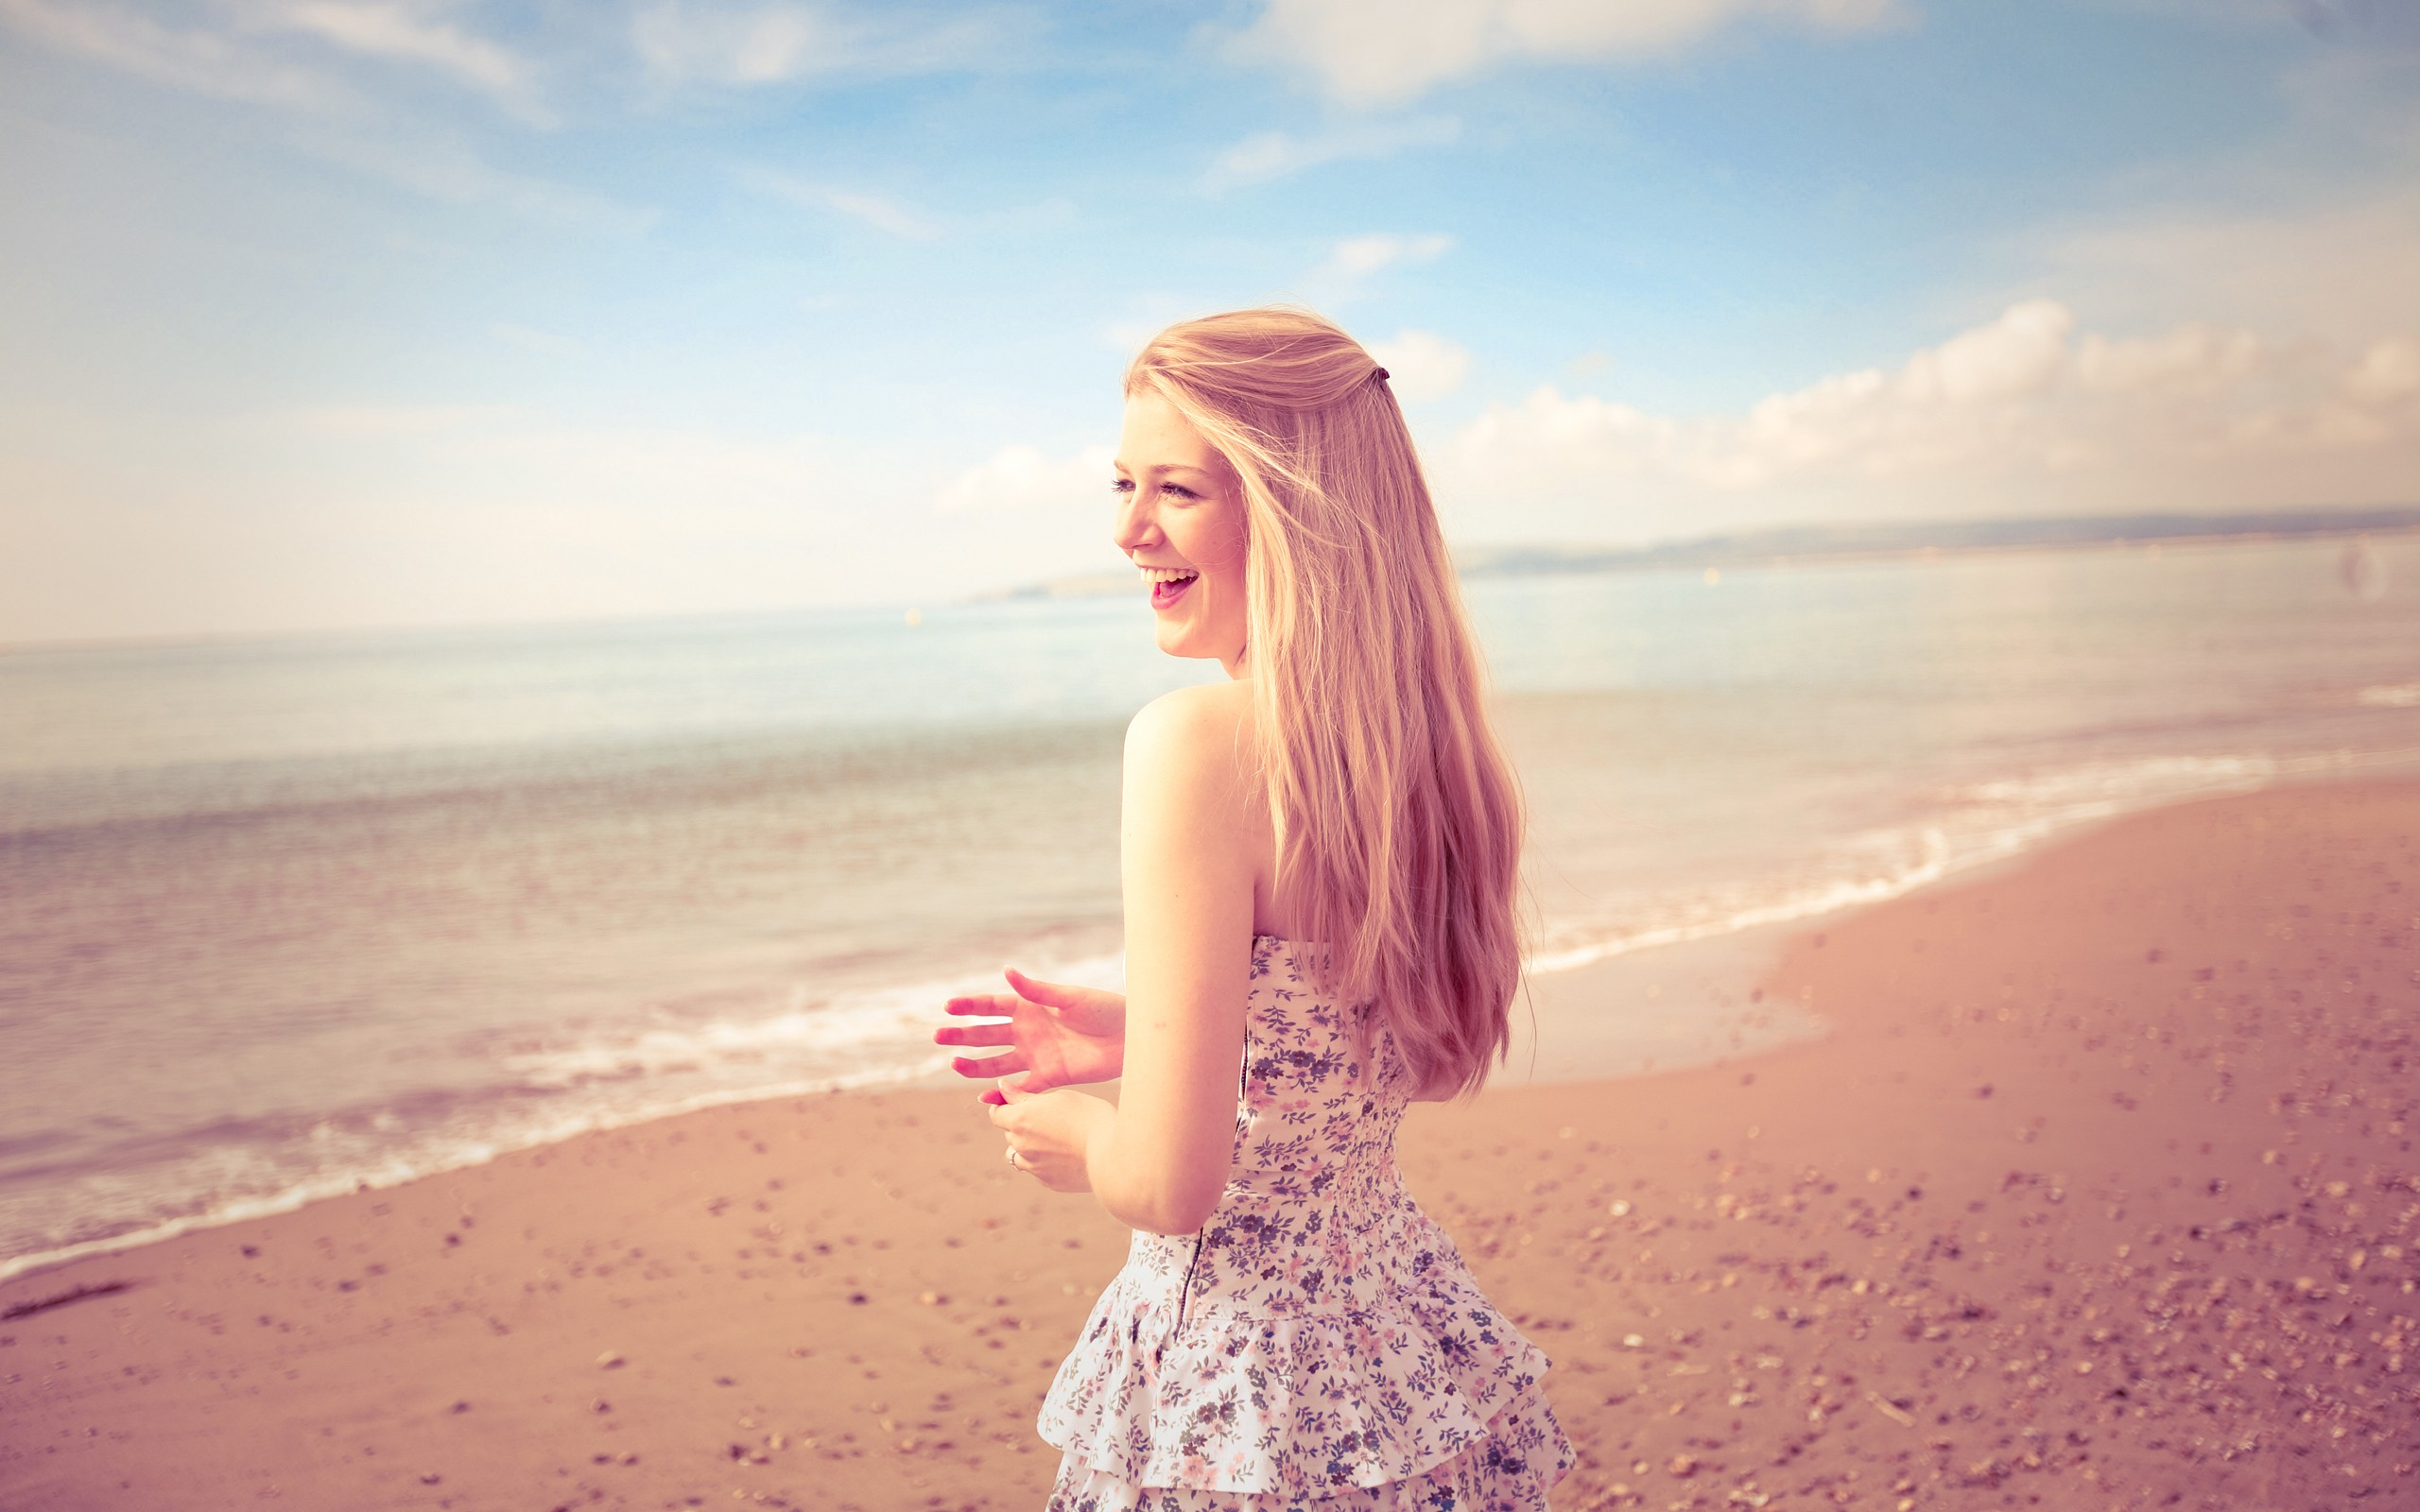 Women Blondes Awesome Girls Beach Smile Dress Happy Models Babes